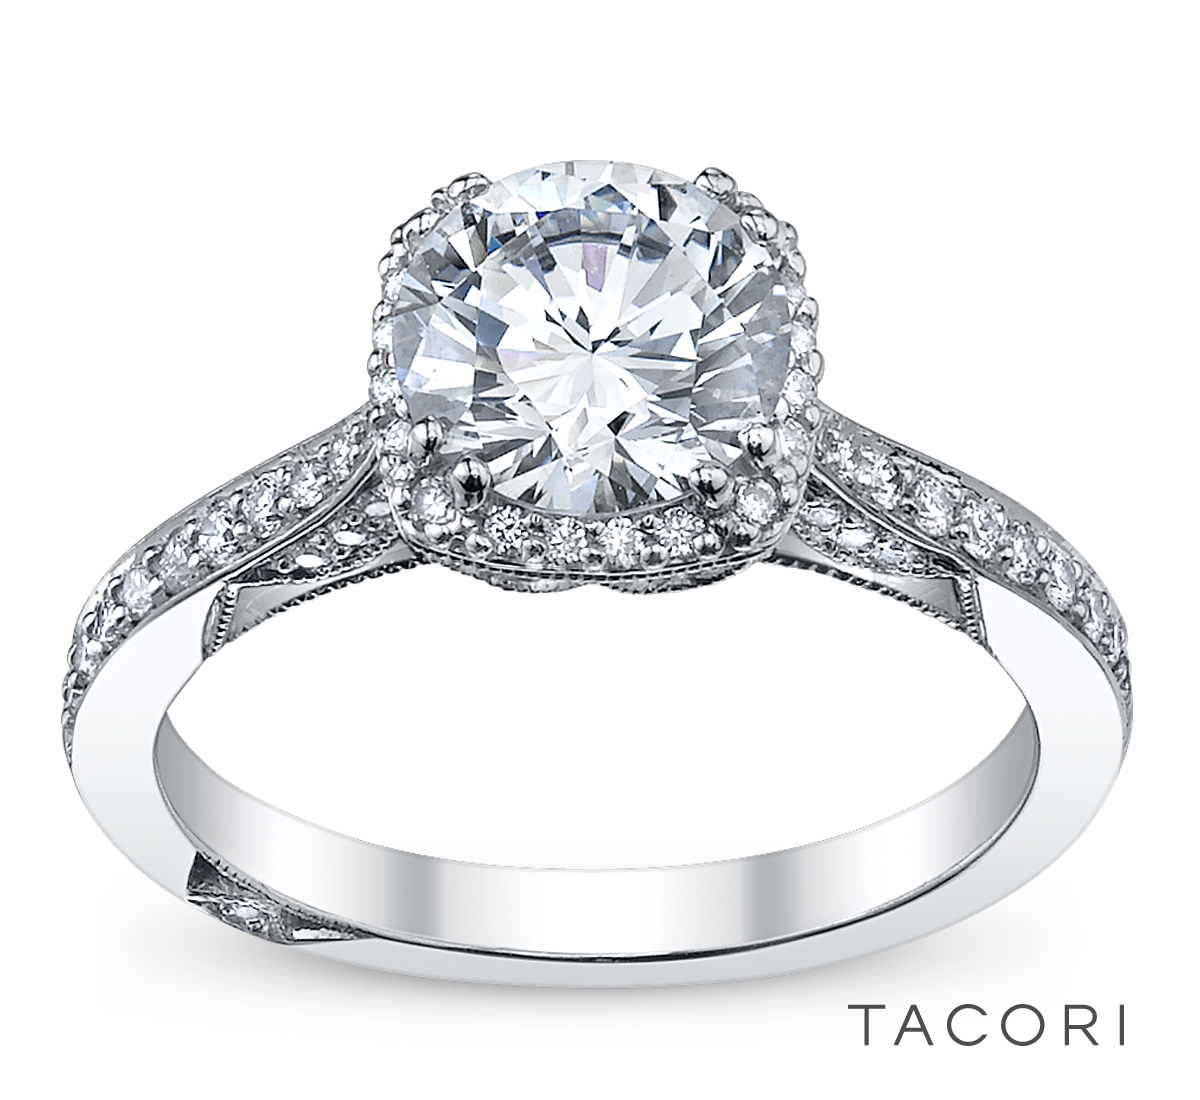 robbins brothers engagement ring of the day tacori With robbins brothers wedding ring sets